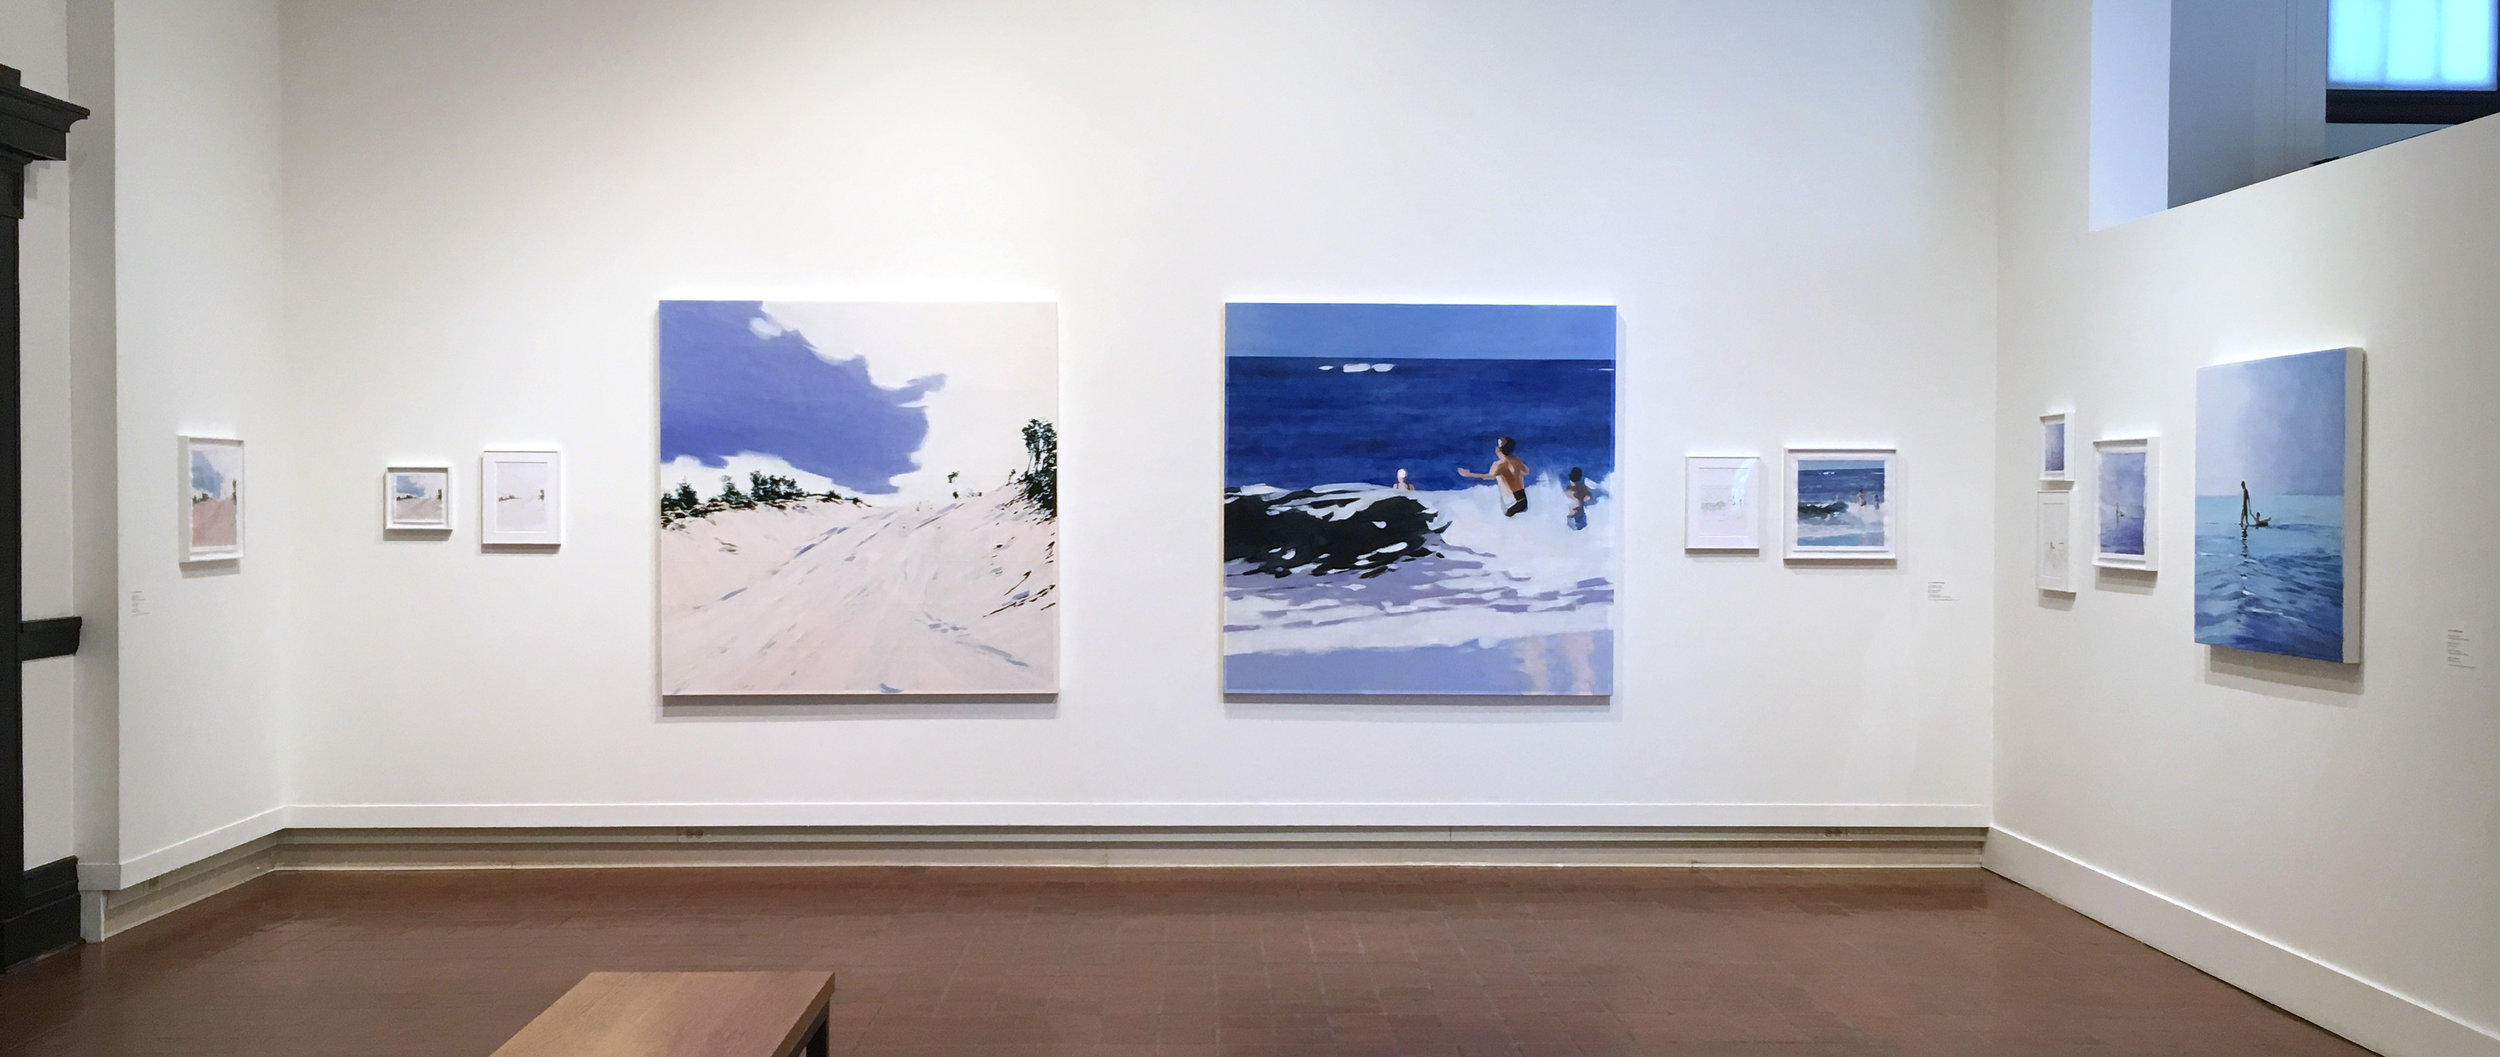 "Isca Greenfield-Sanders' artwork in ""Ocean's Edge"" installation view, photo credit Erin Jenkins"